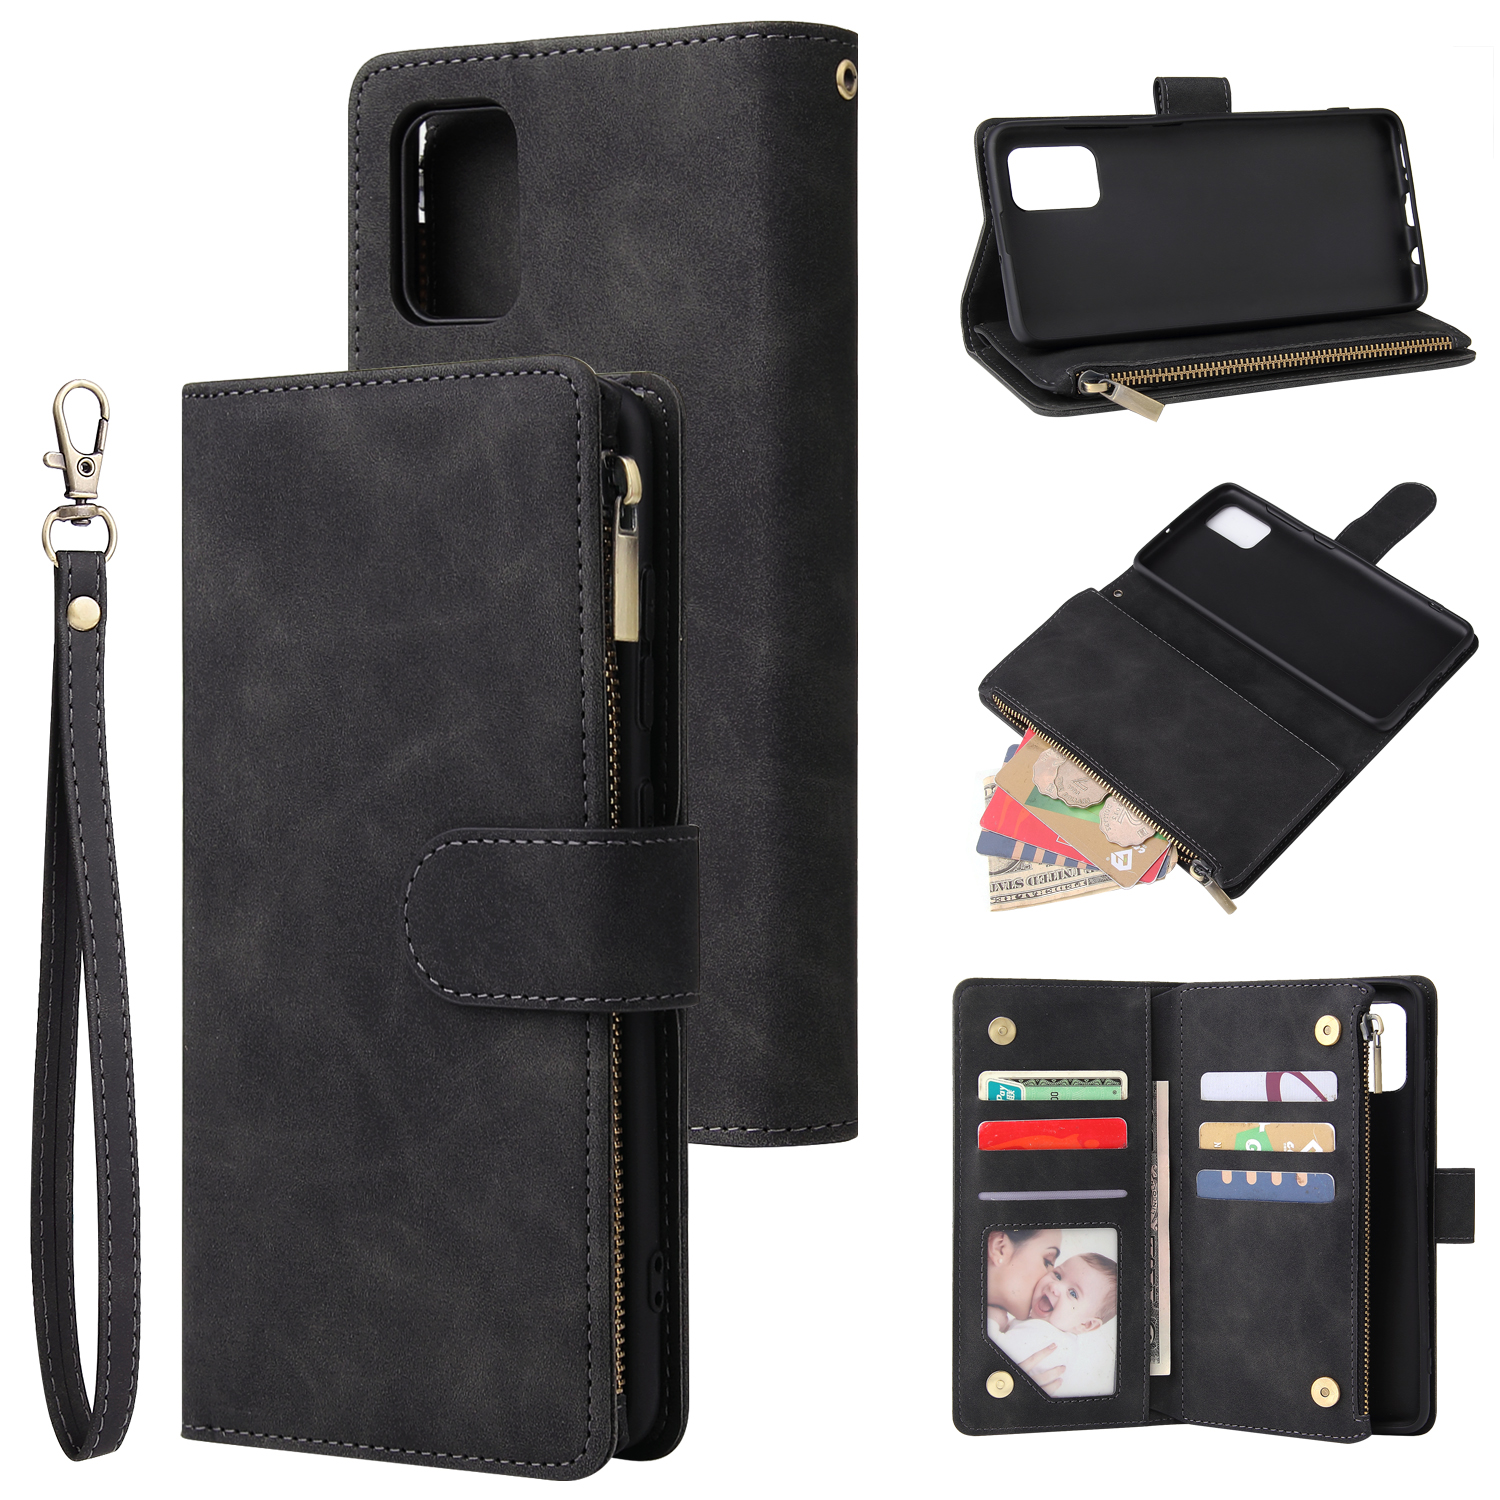 For Samsung A51 Case Smartphone Shell Precise Cutouts Zipper Closure Wallet Design Overall Protection Phone Cover  Black